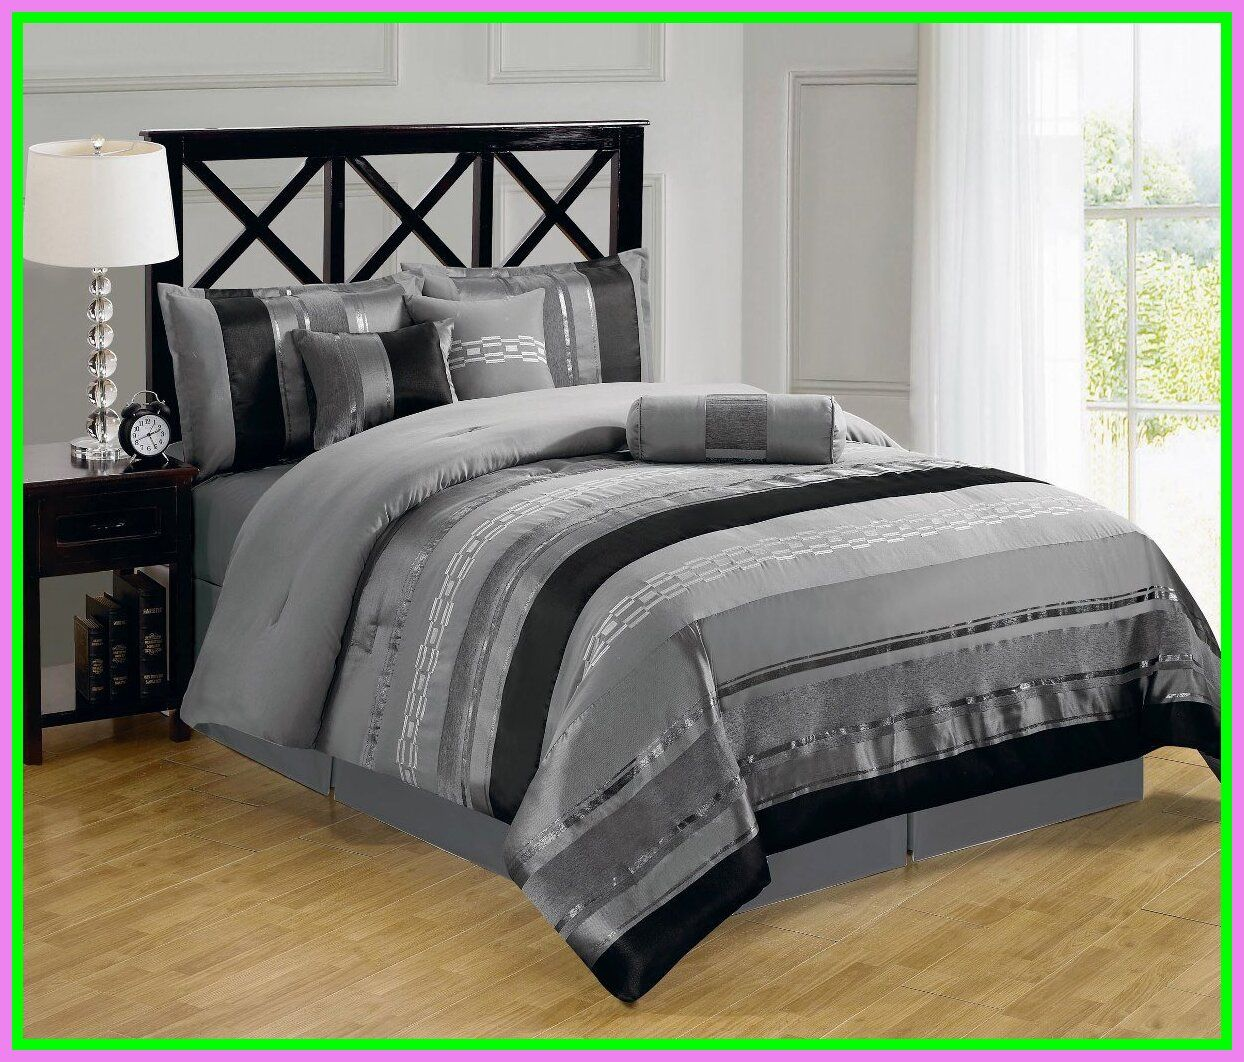 105 reference of can king sheets fit california king bed in 2020